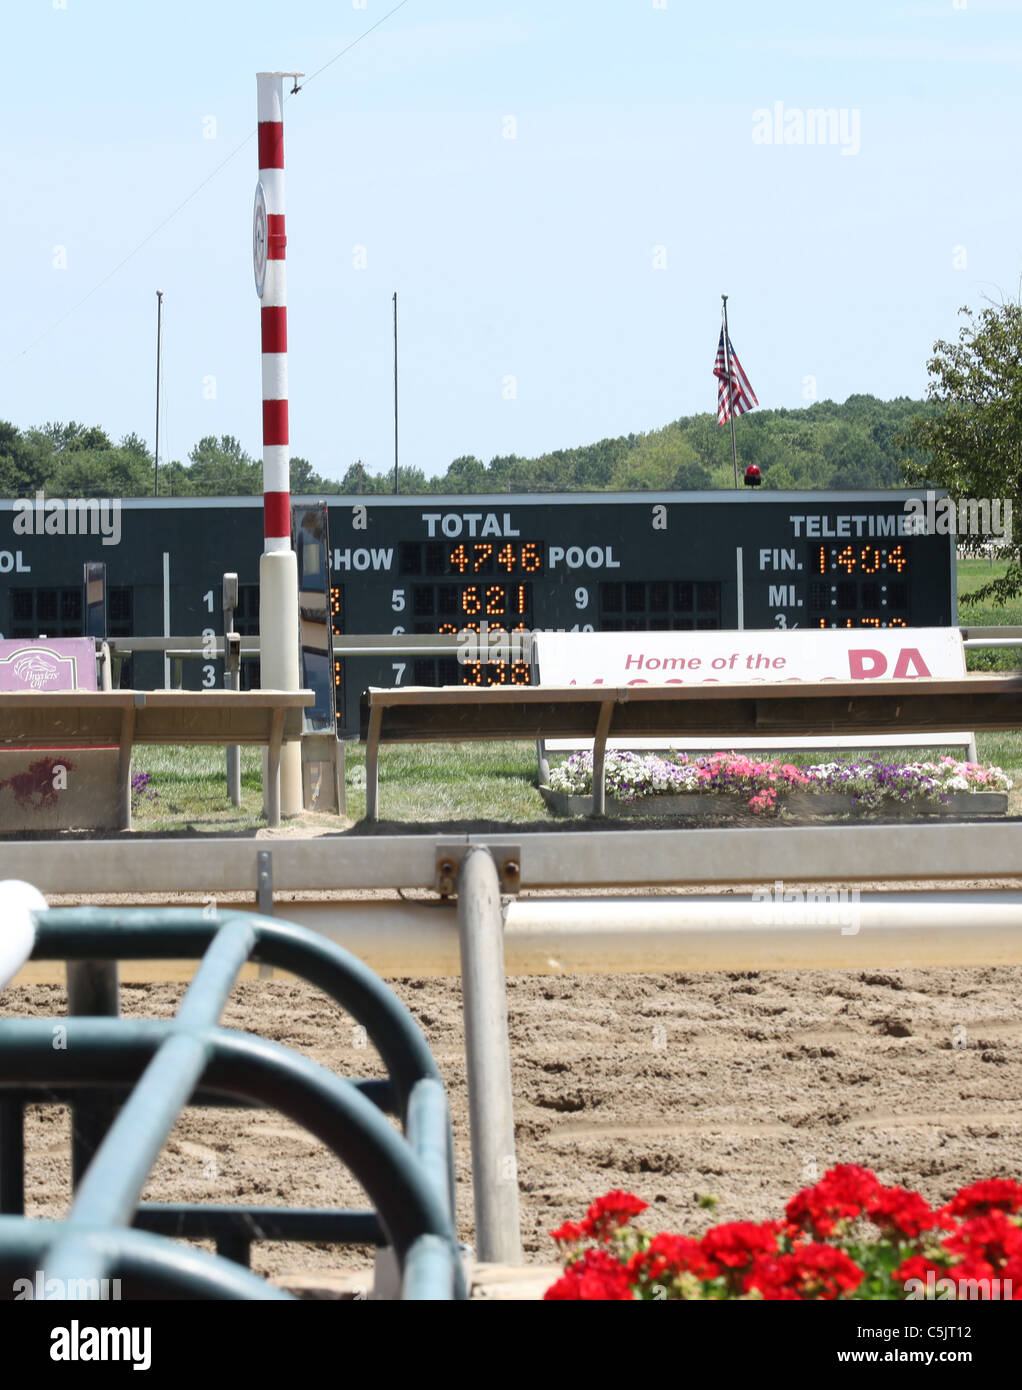 Finish line at a race horse track - Stock Image